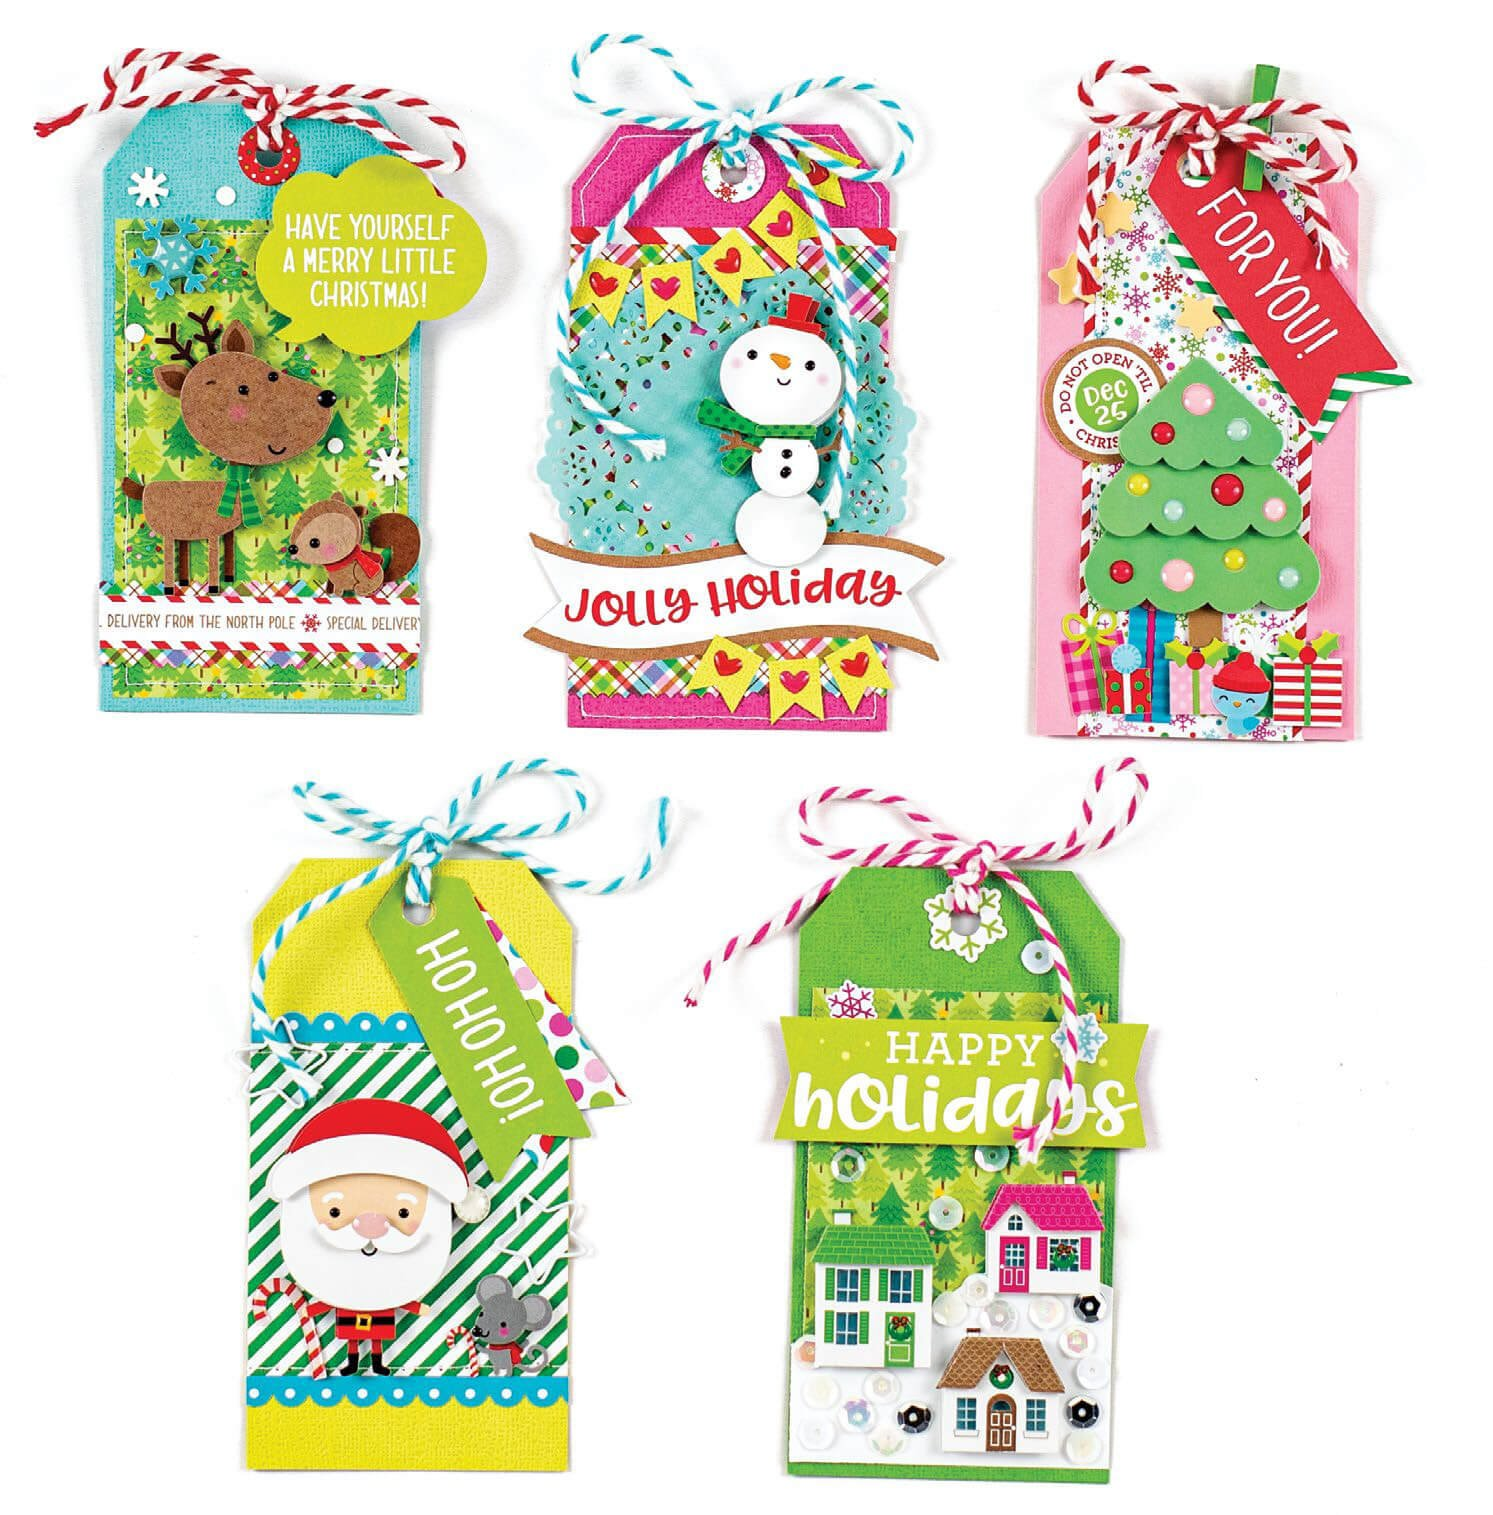 Scrapbook & Cards Today - Winter 2019 - Festive Gift Tags by Nathalie Leonelli